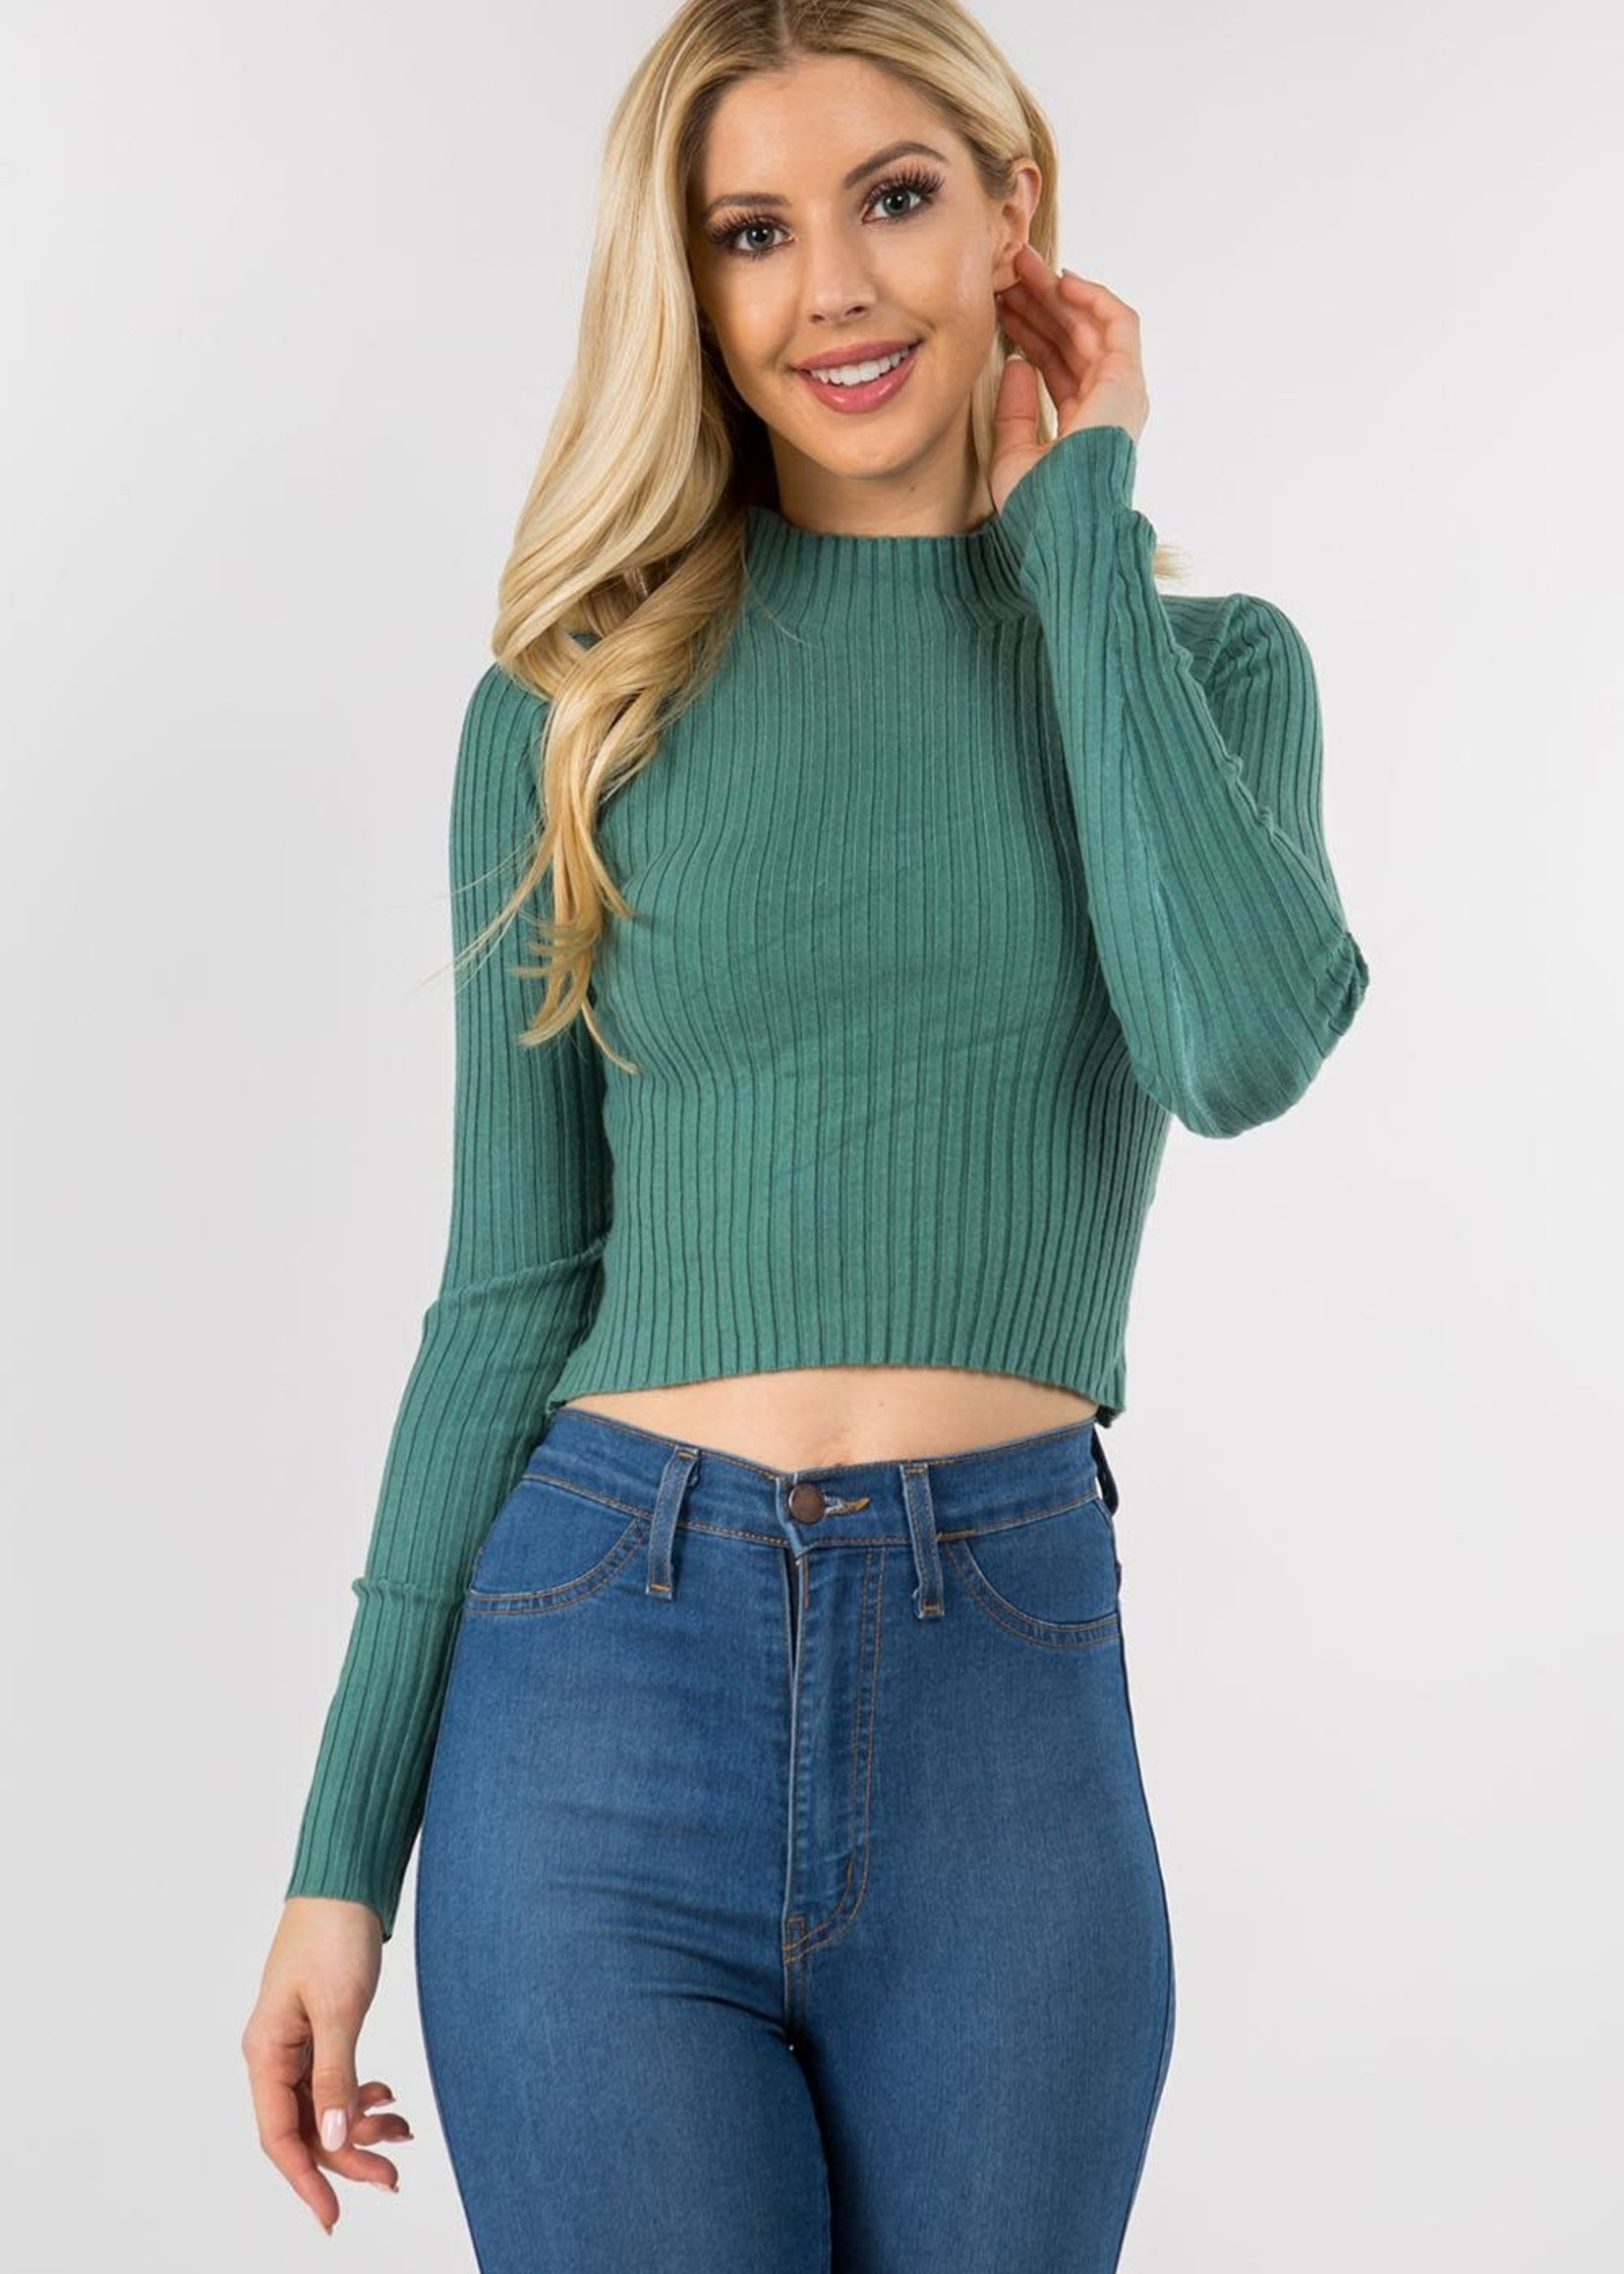 Best Of All Fall Sweater (4 Colors)